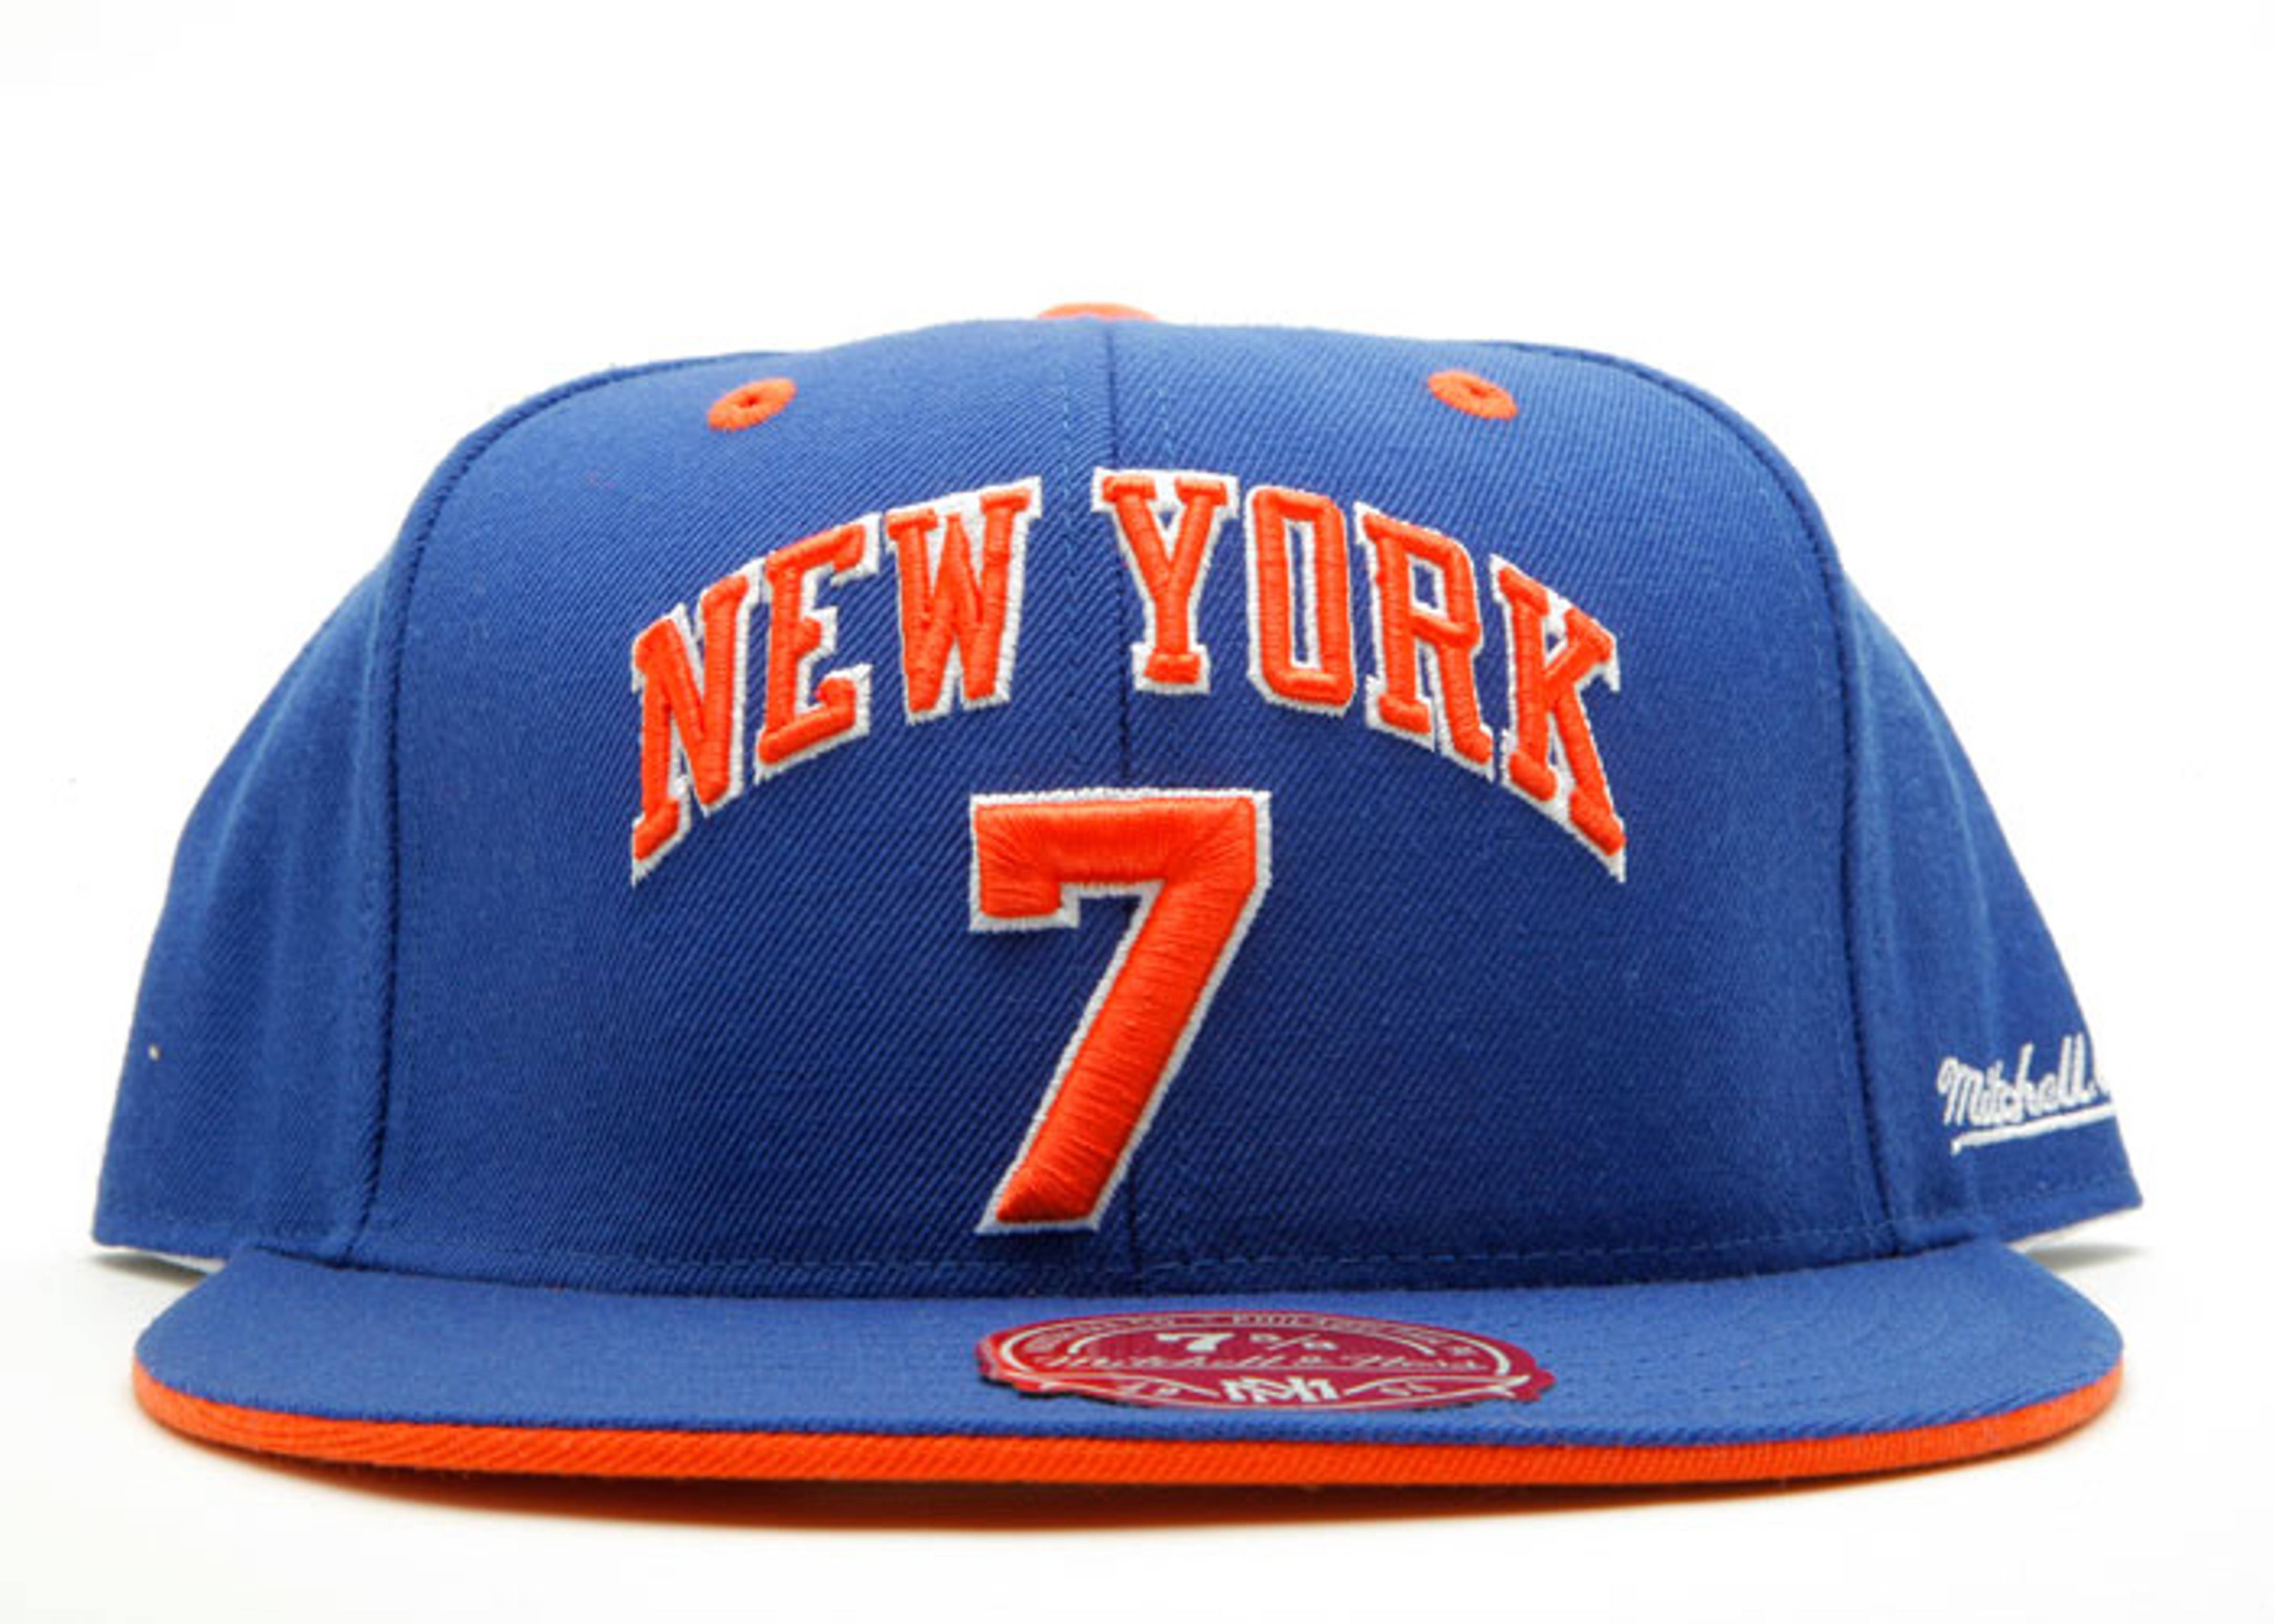 """89 dunk champ new york knicks fitted """"kenny """"sky"""" walker"""""""